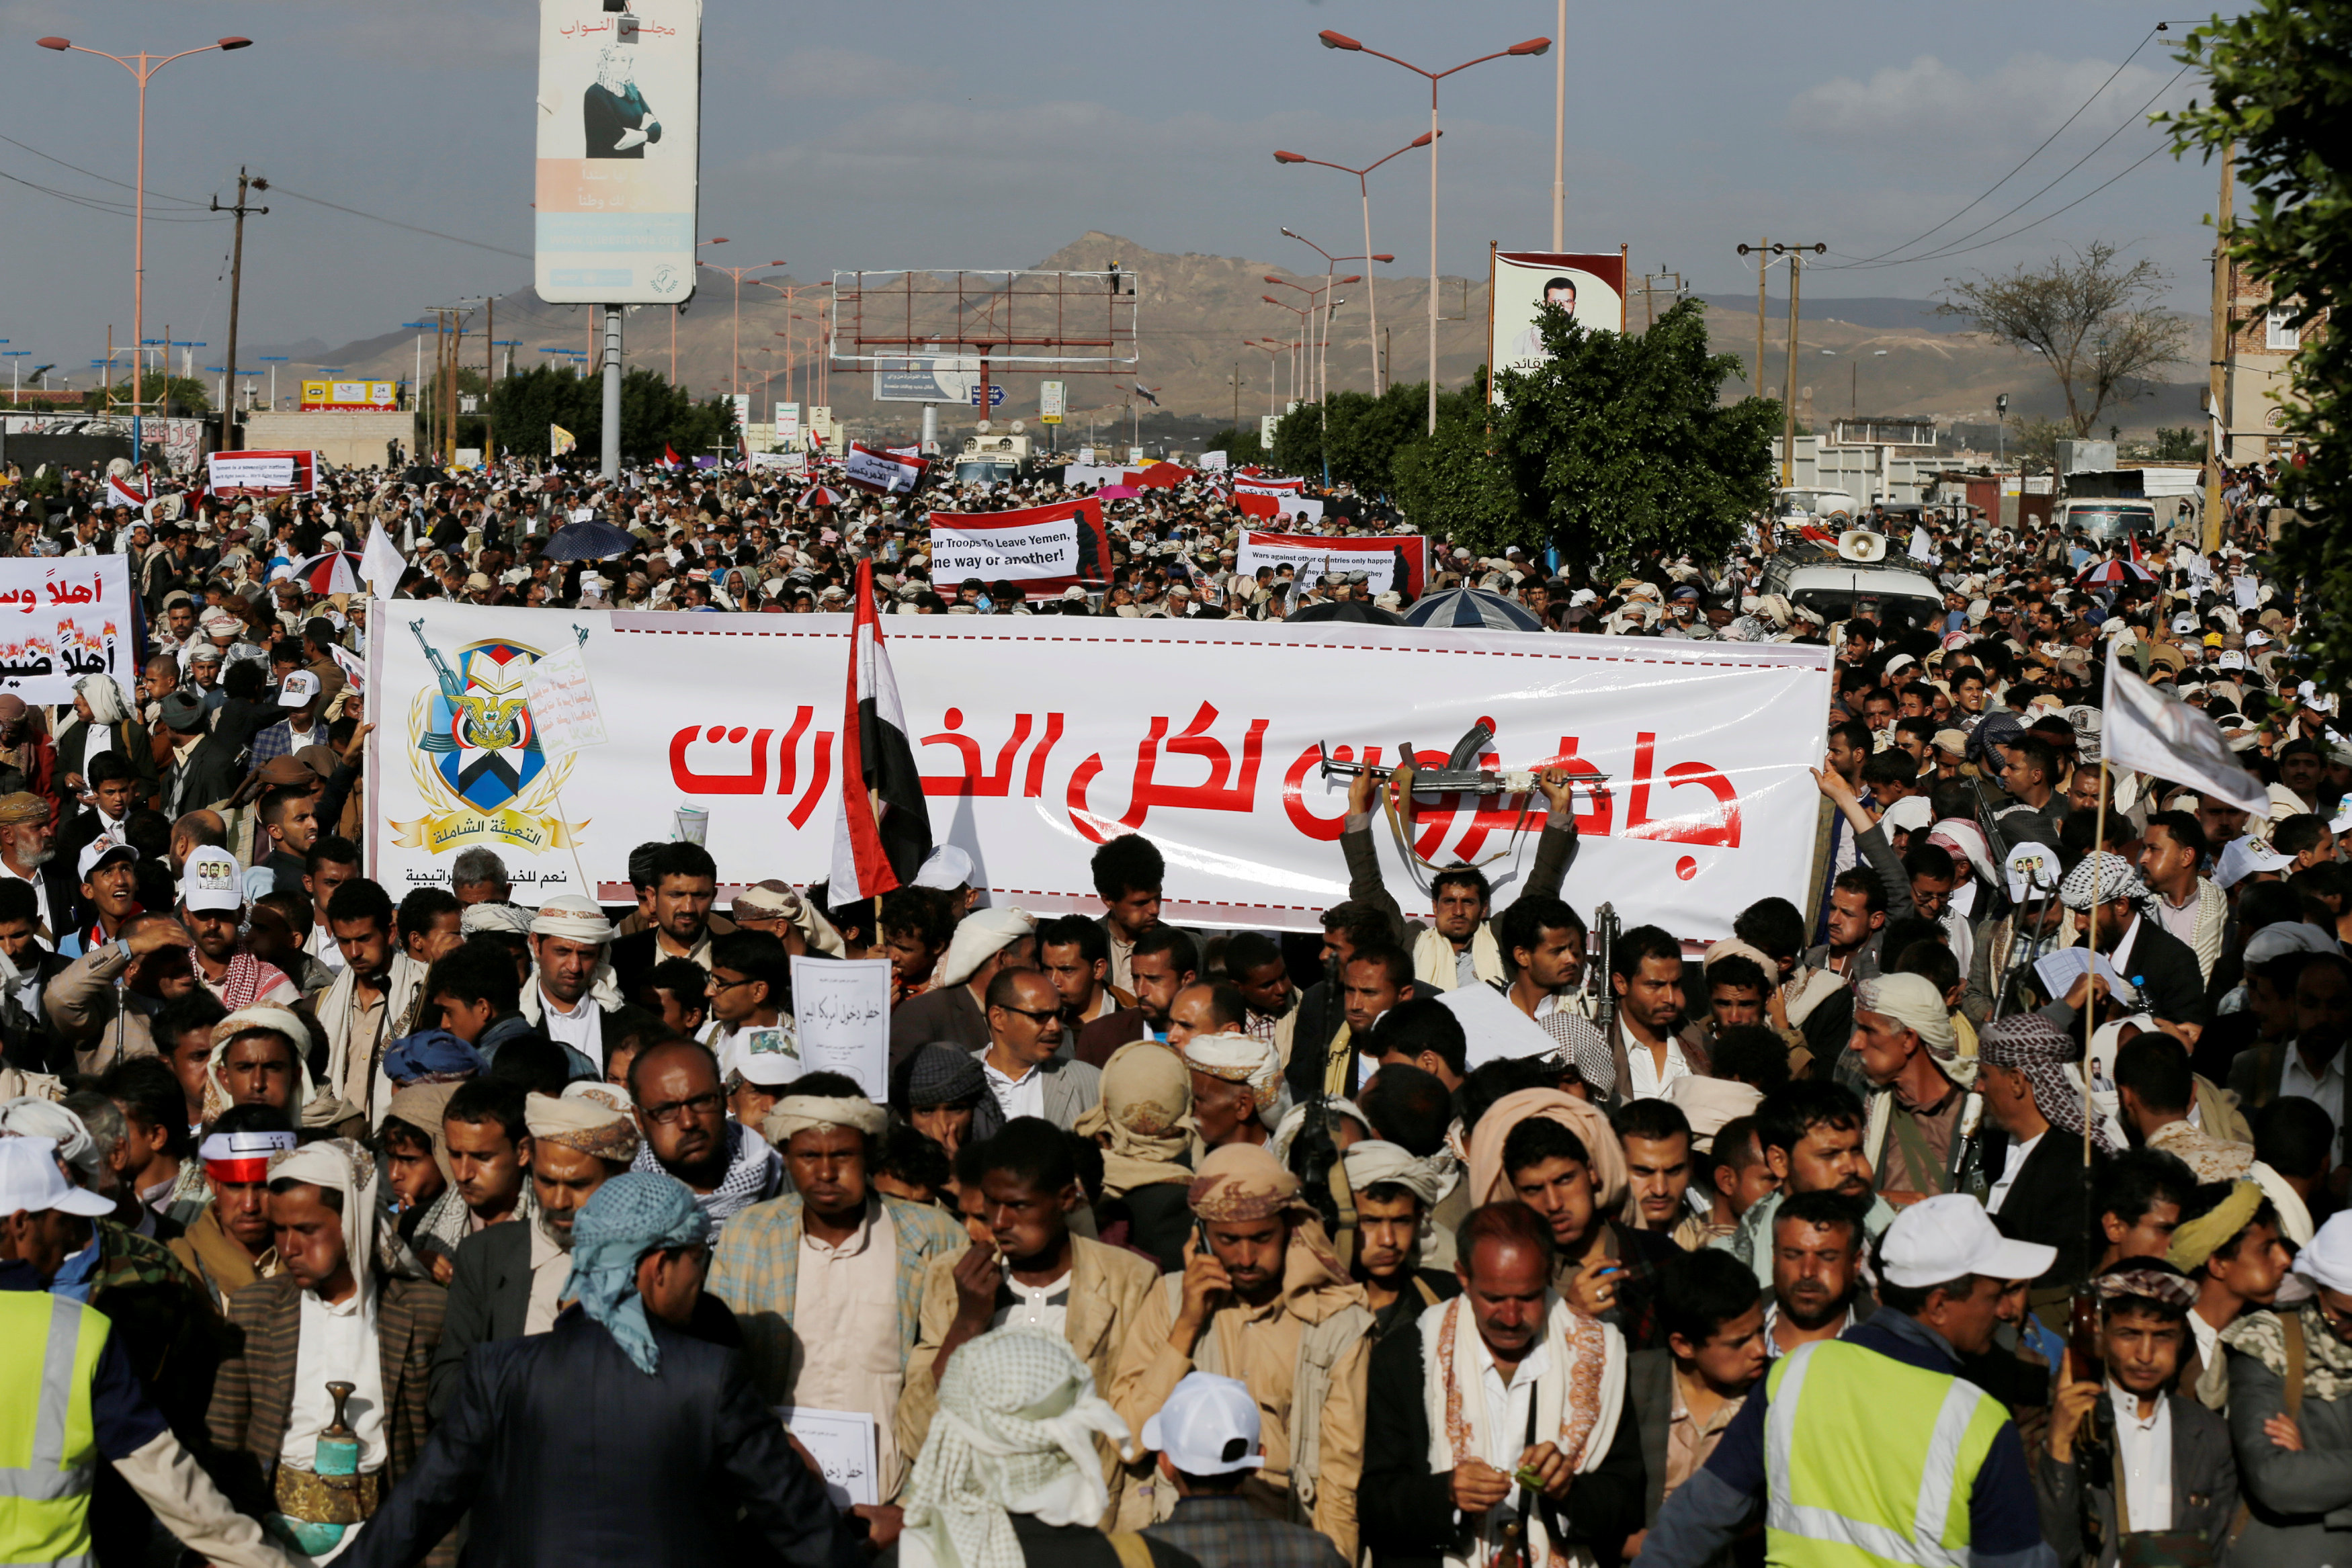 Followers of Houthi movement